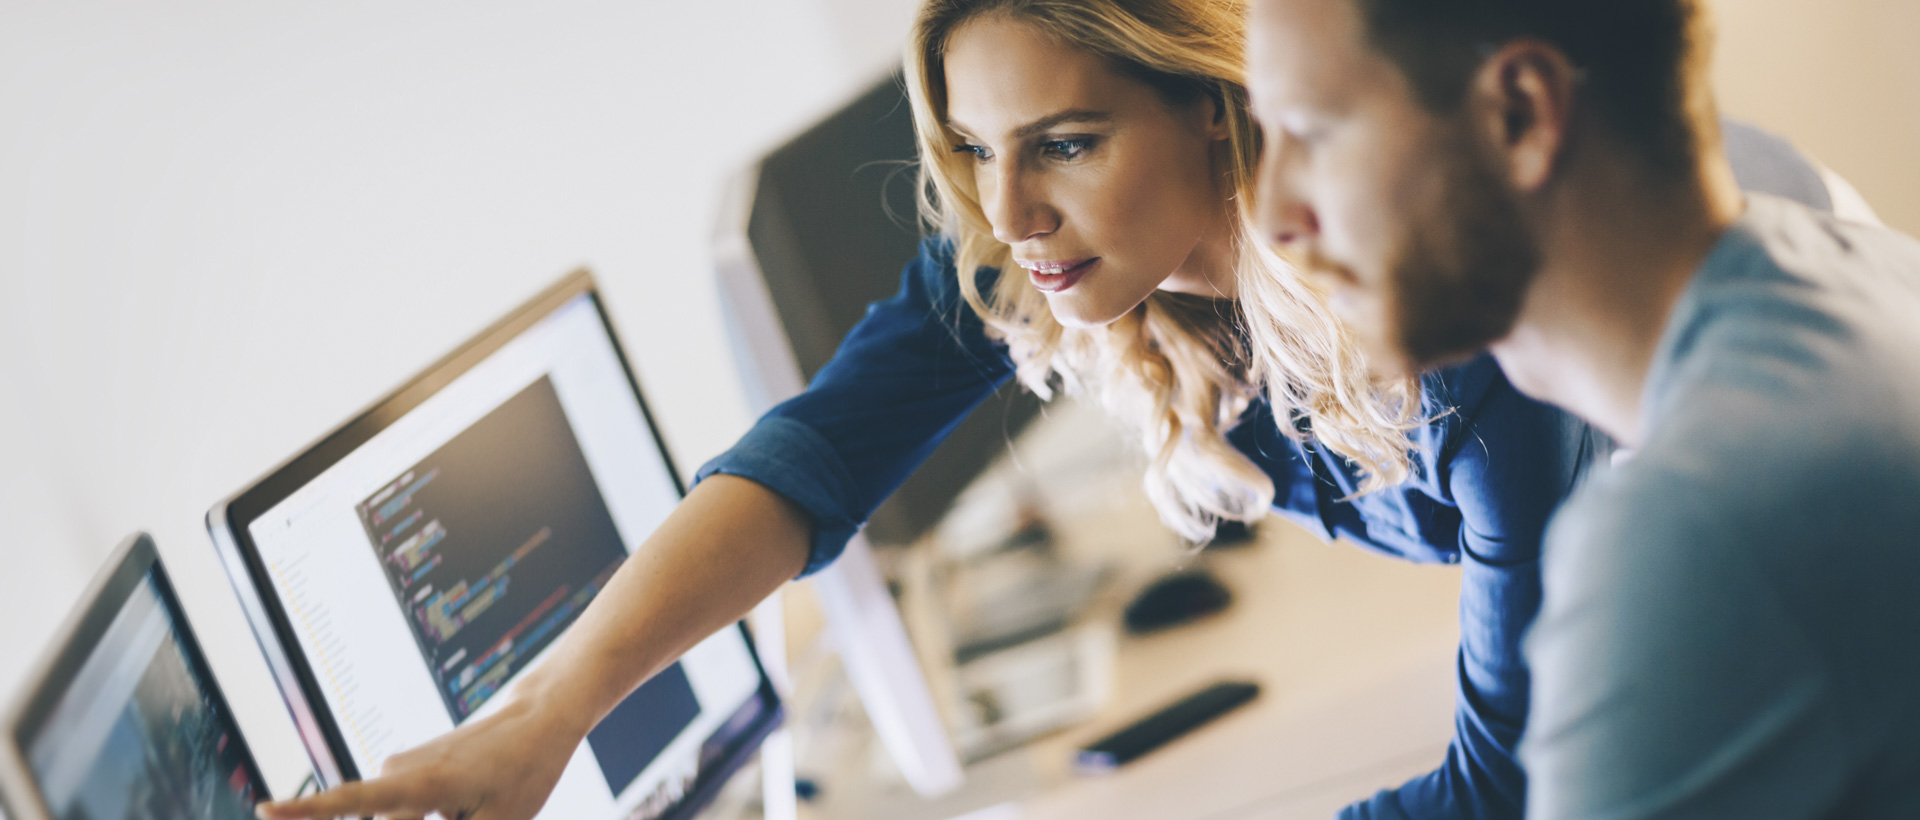 10 Questions To Ask Your New IT Support Provider